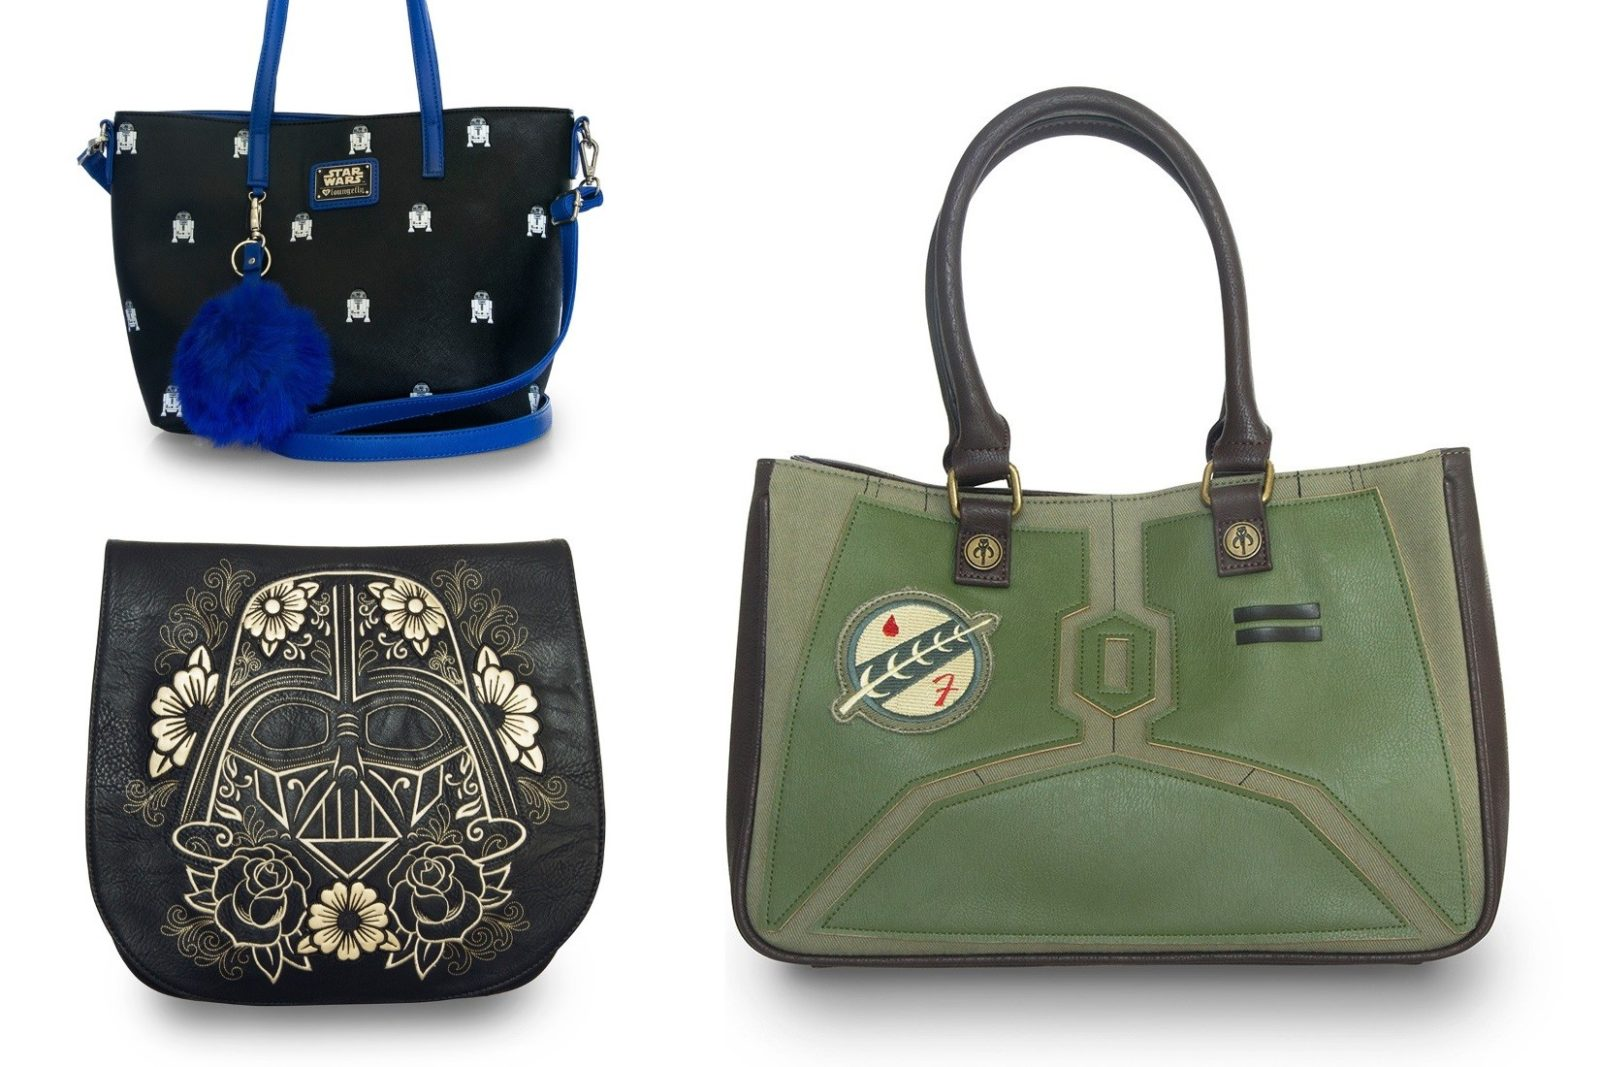 Fantastic new Loungefly x Star Wars range!